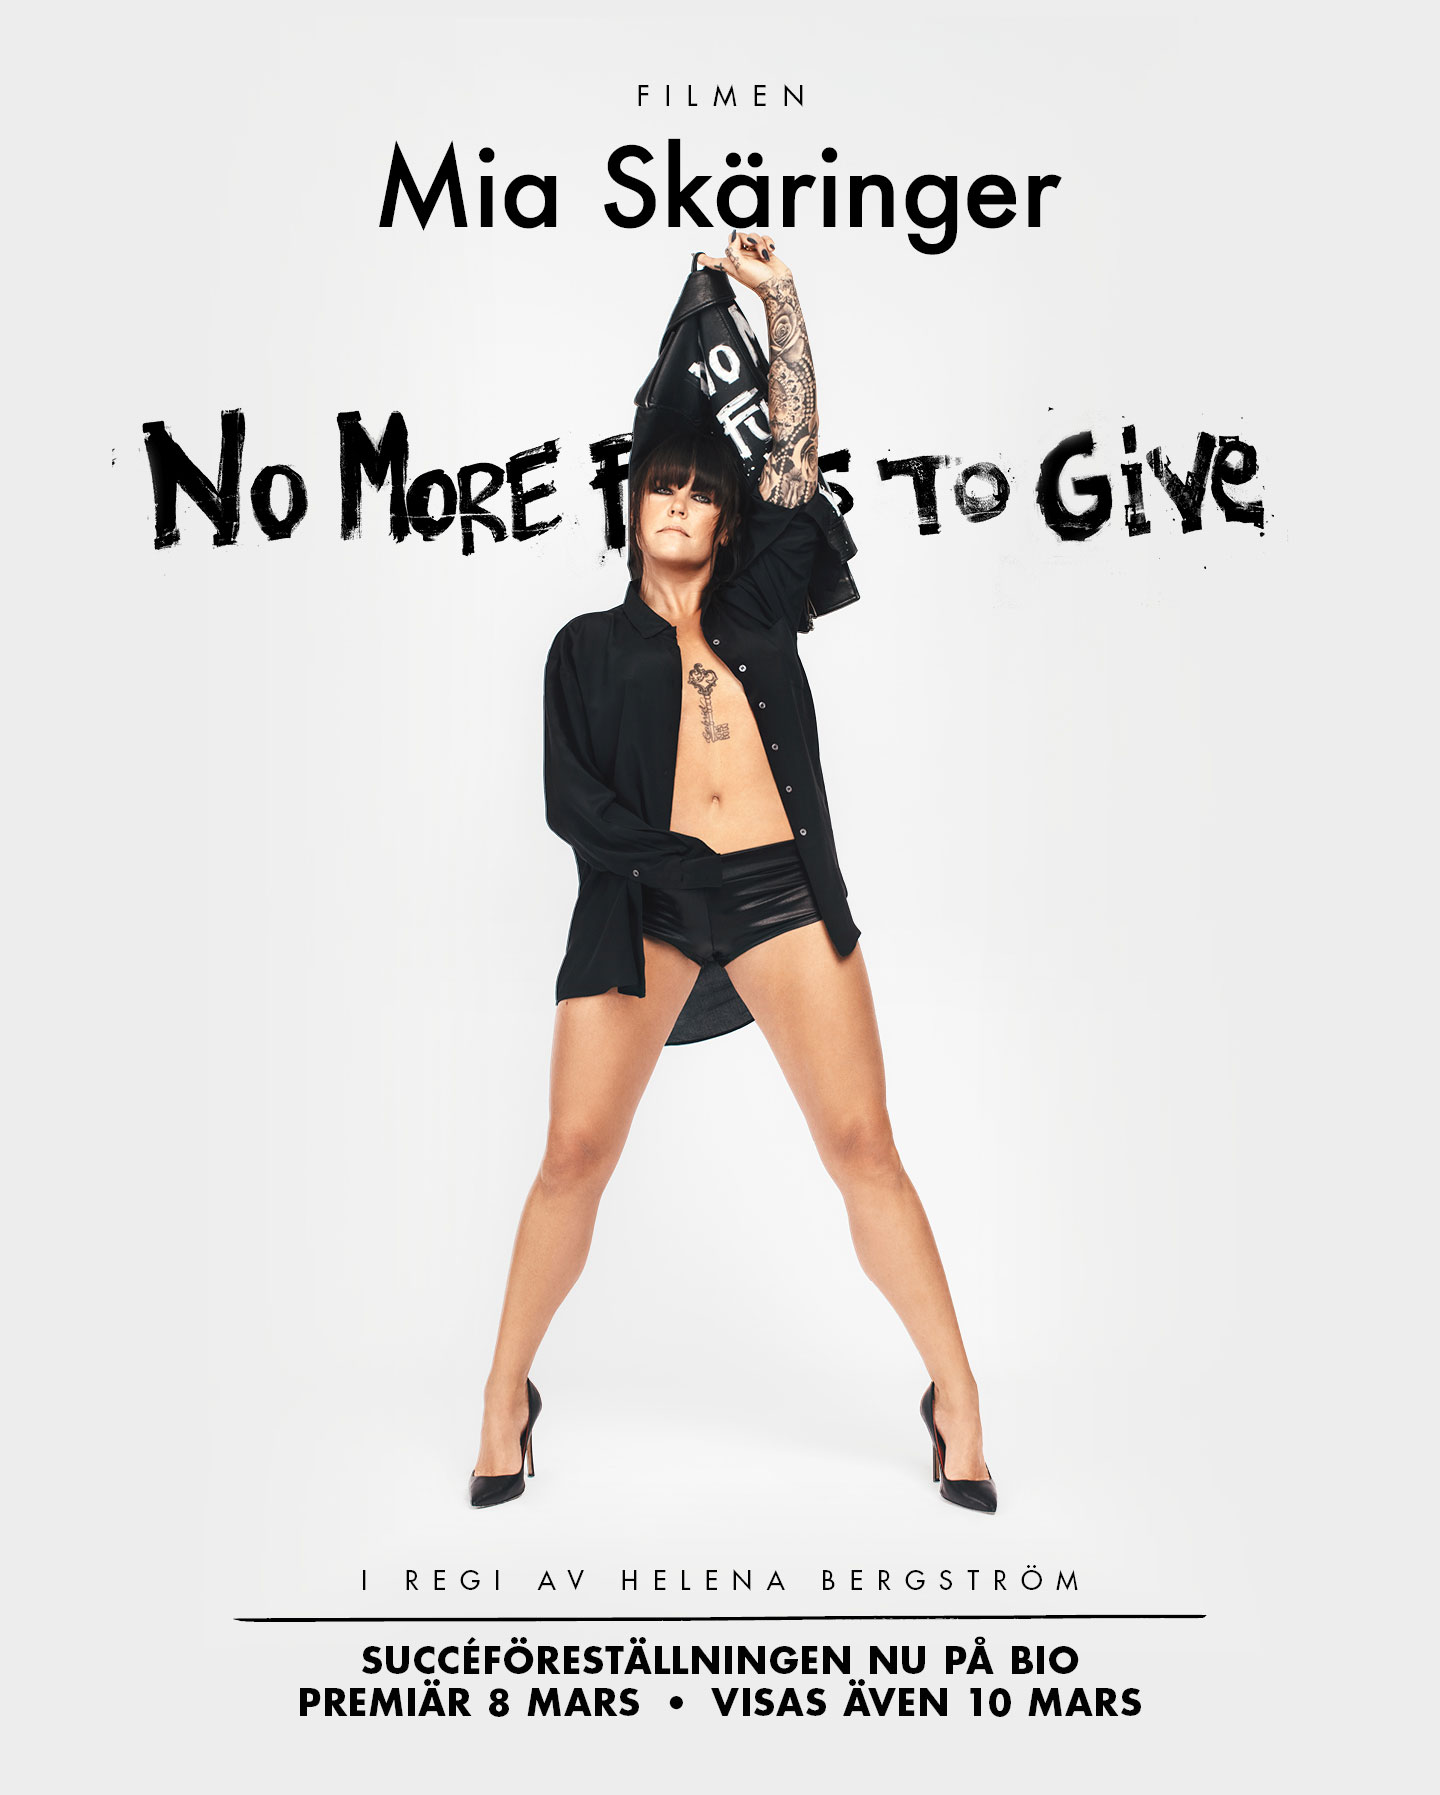 Filmen Mia Skäringer No More Fucks To Give